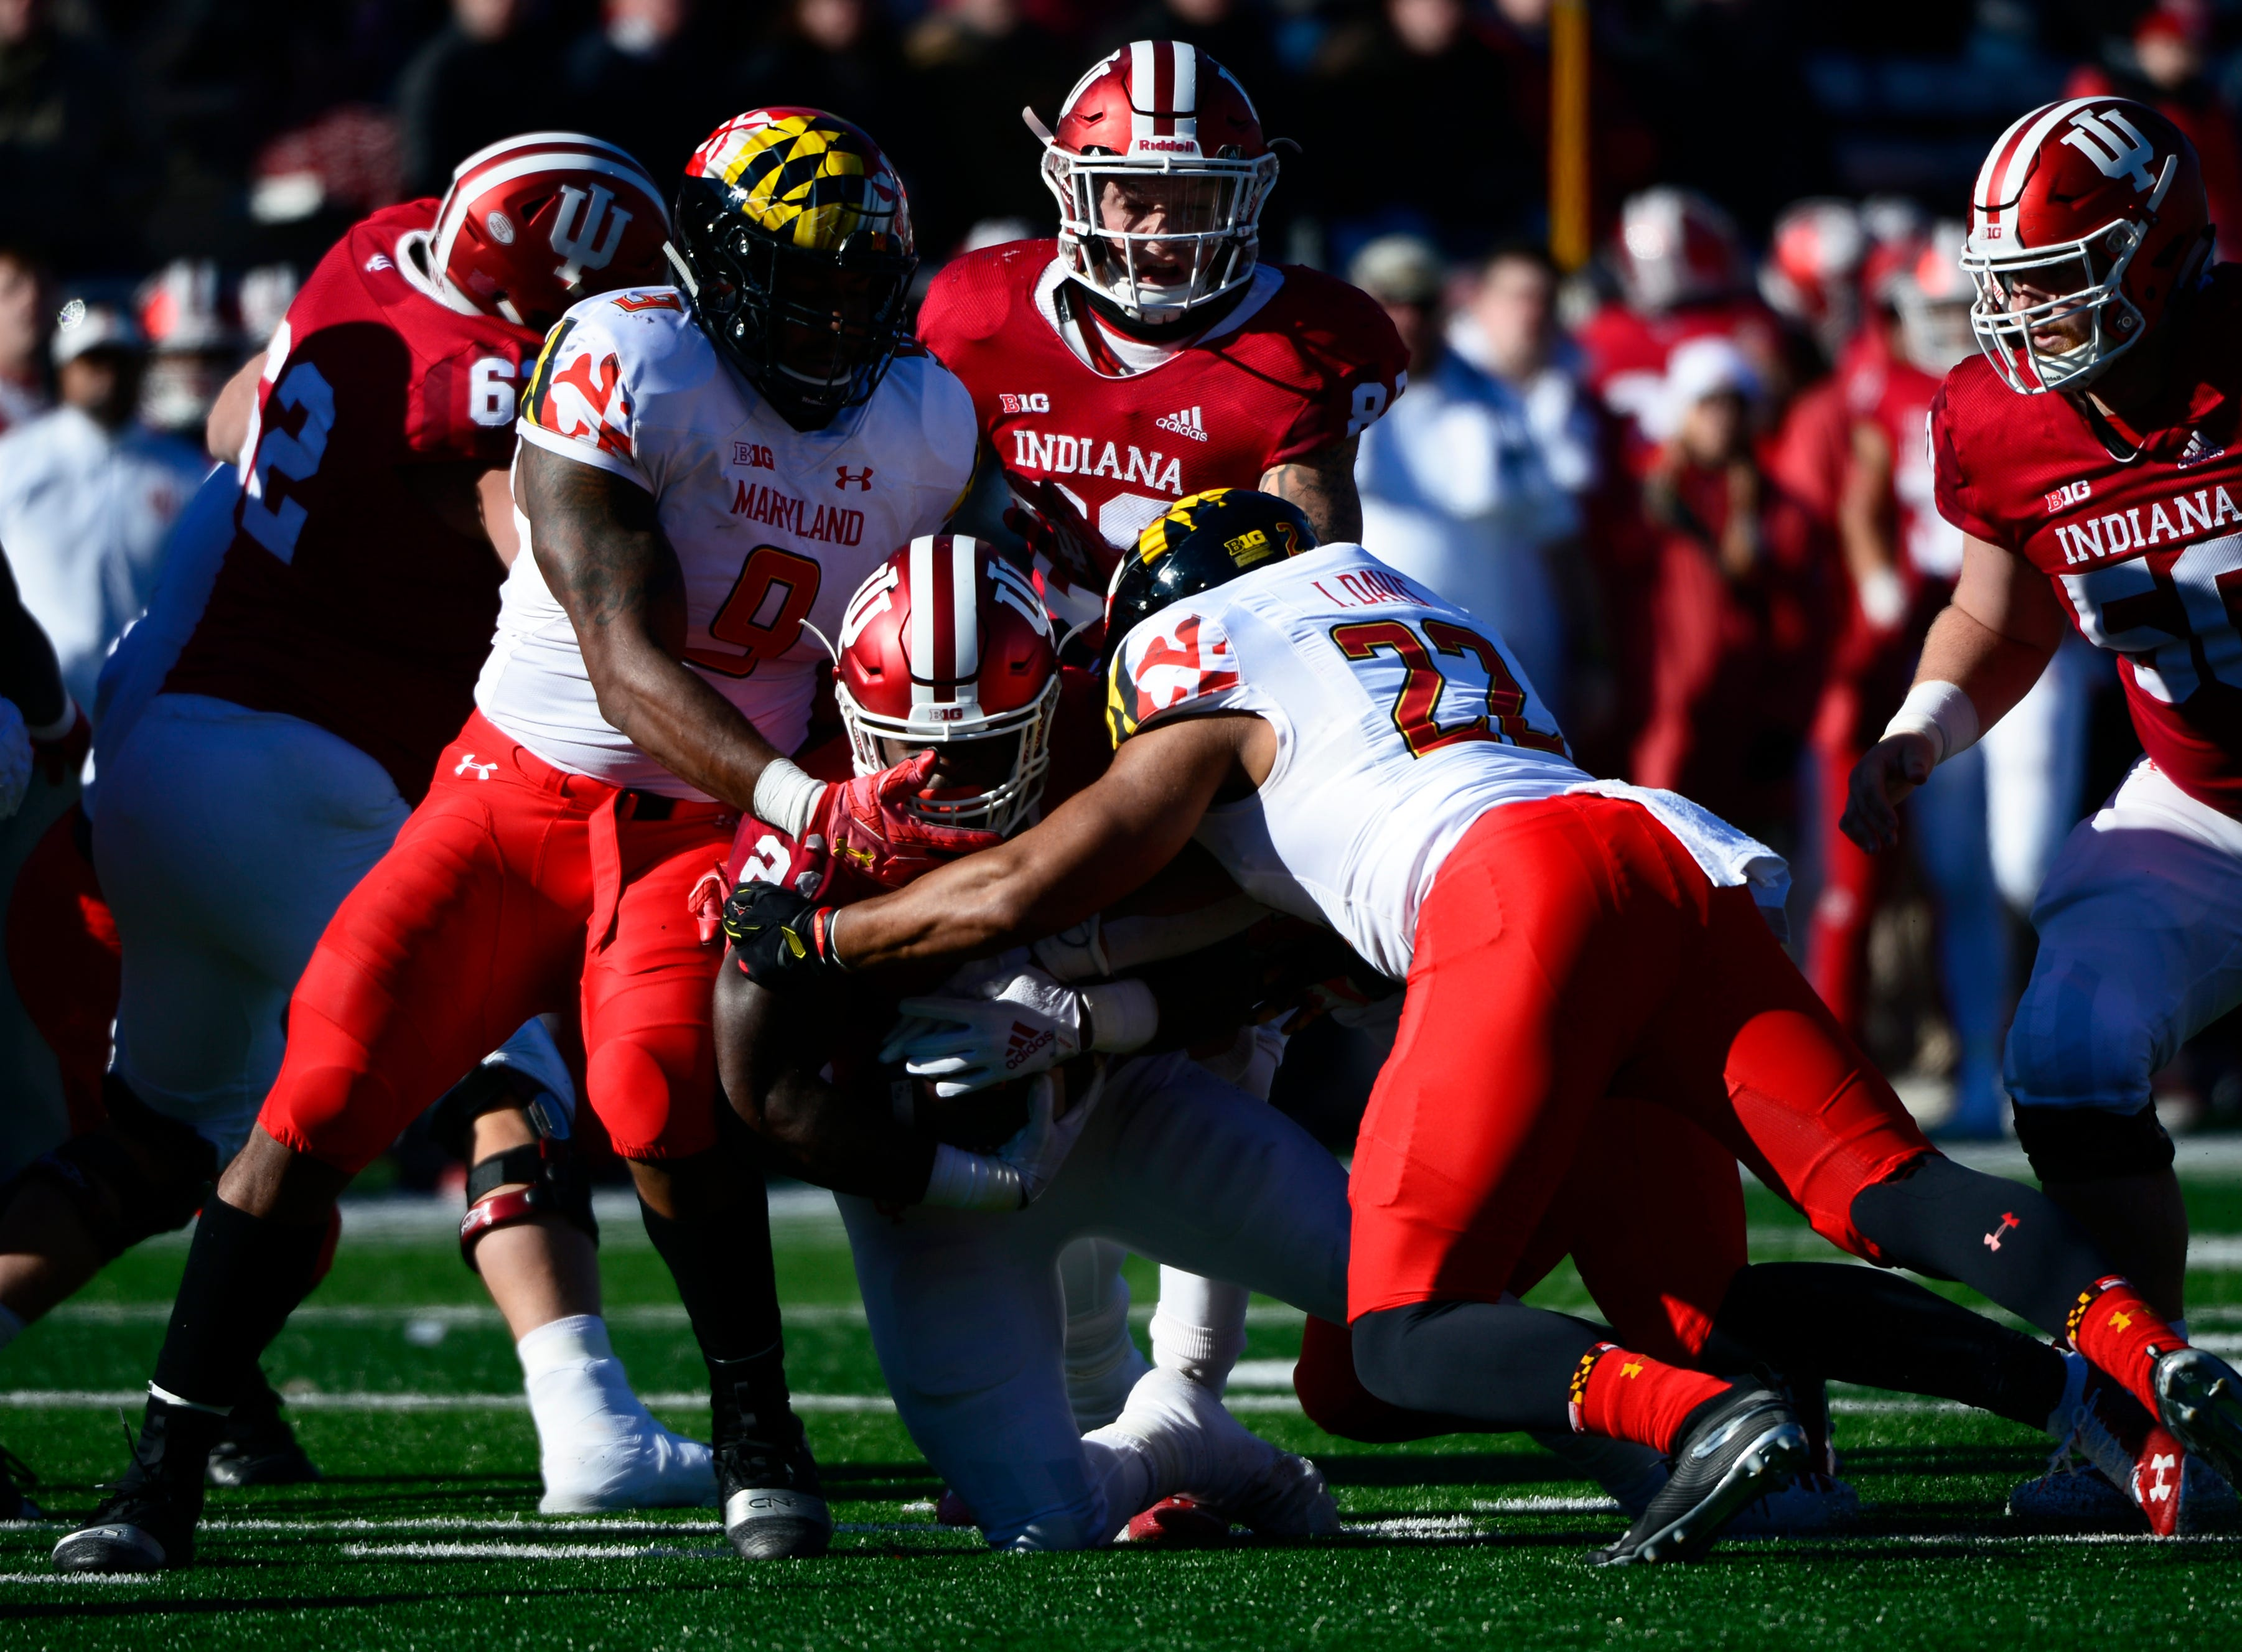 Indiana Hoosiers running back Stevie Scott (21) runs the ball during the game against Maryland at Memorial Stadium in Bloomington, Ind., on Satuday, Nov. 10, 2018.